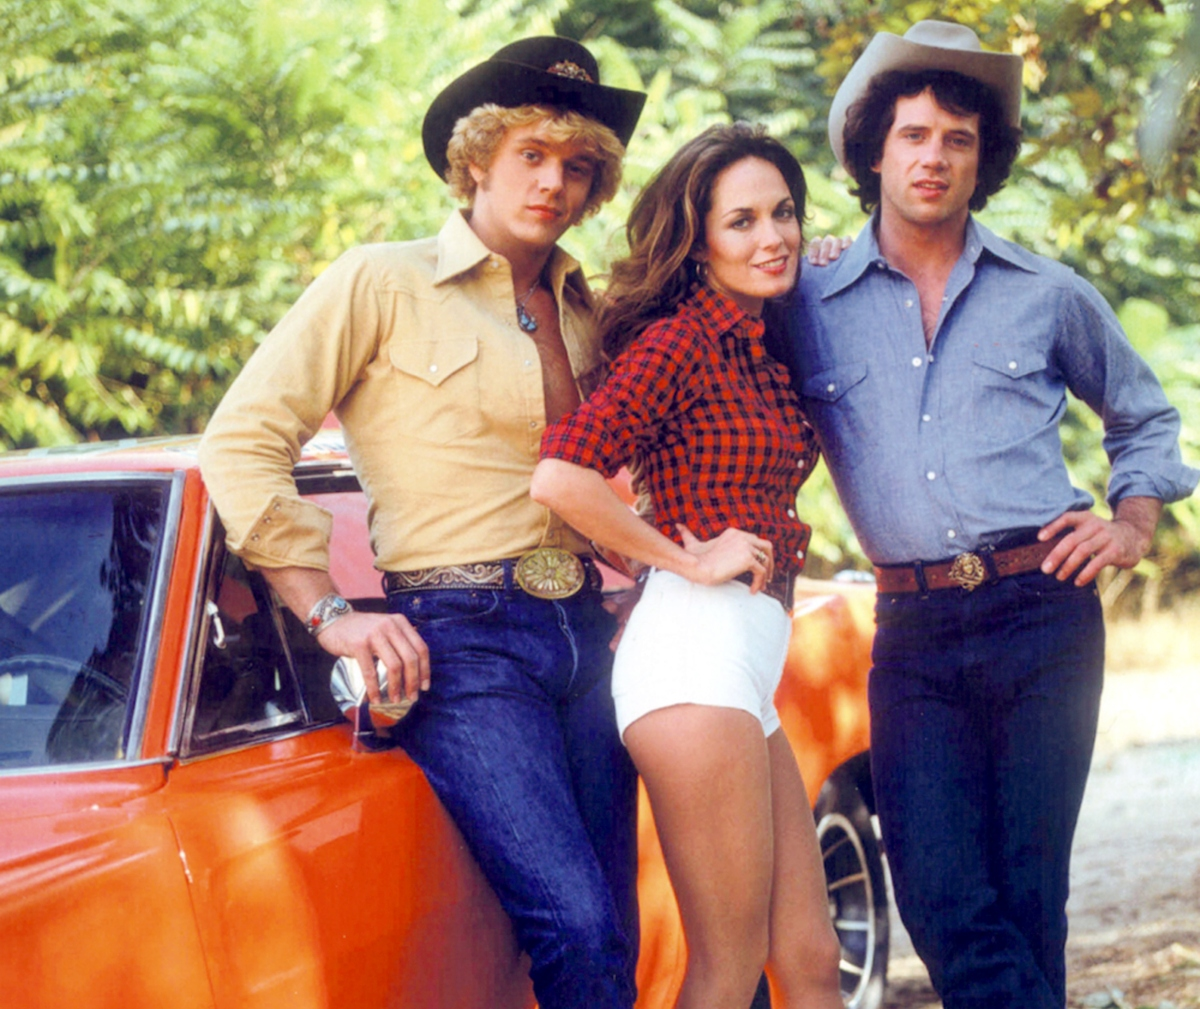 John Schneider, Catherine Bach, and Tom Wopat of The Dukes of Hazzard